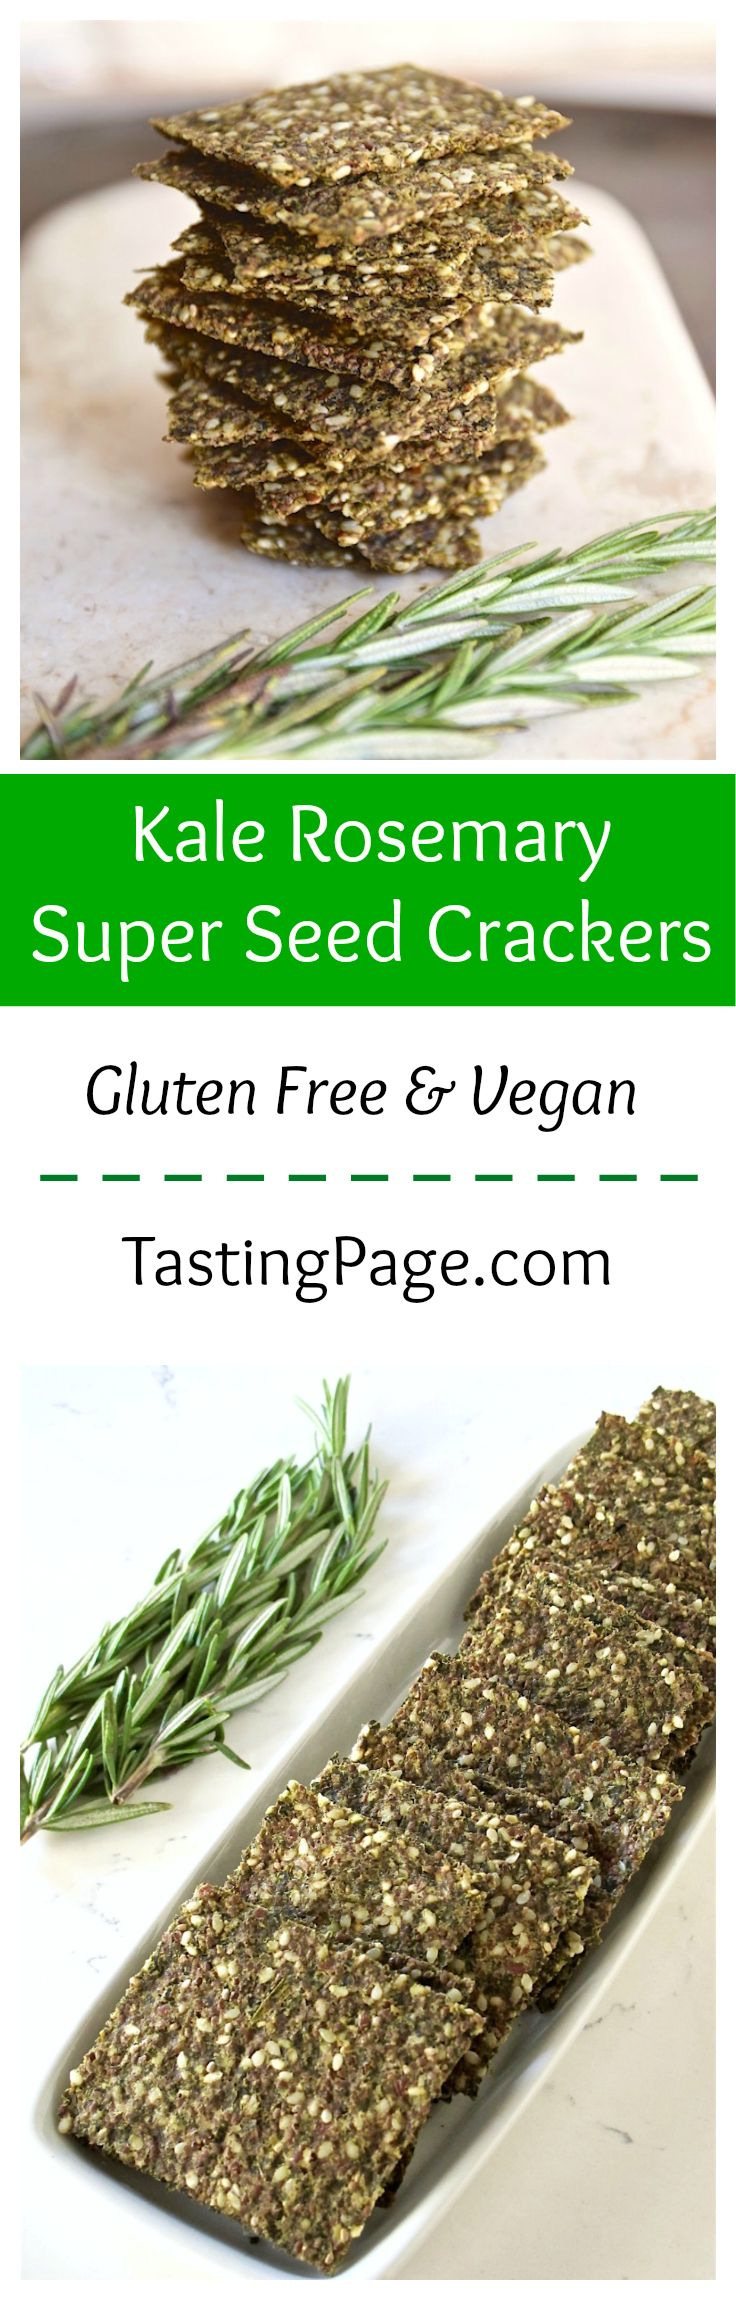 Kale Rosemary Super Seed Crackers Vegan Crackers Raw Food Recipes Baked Kale